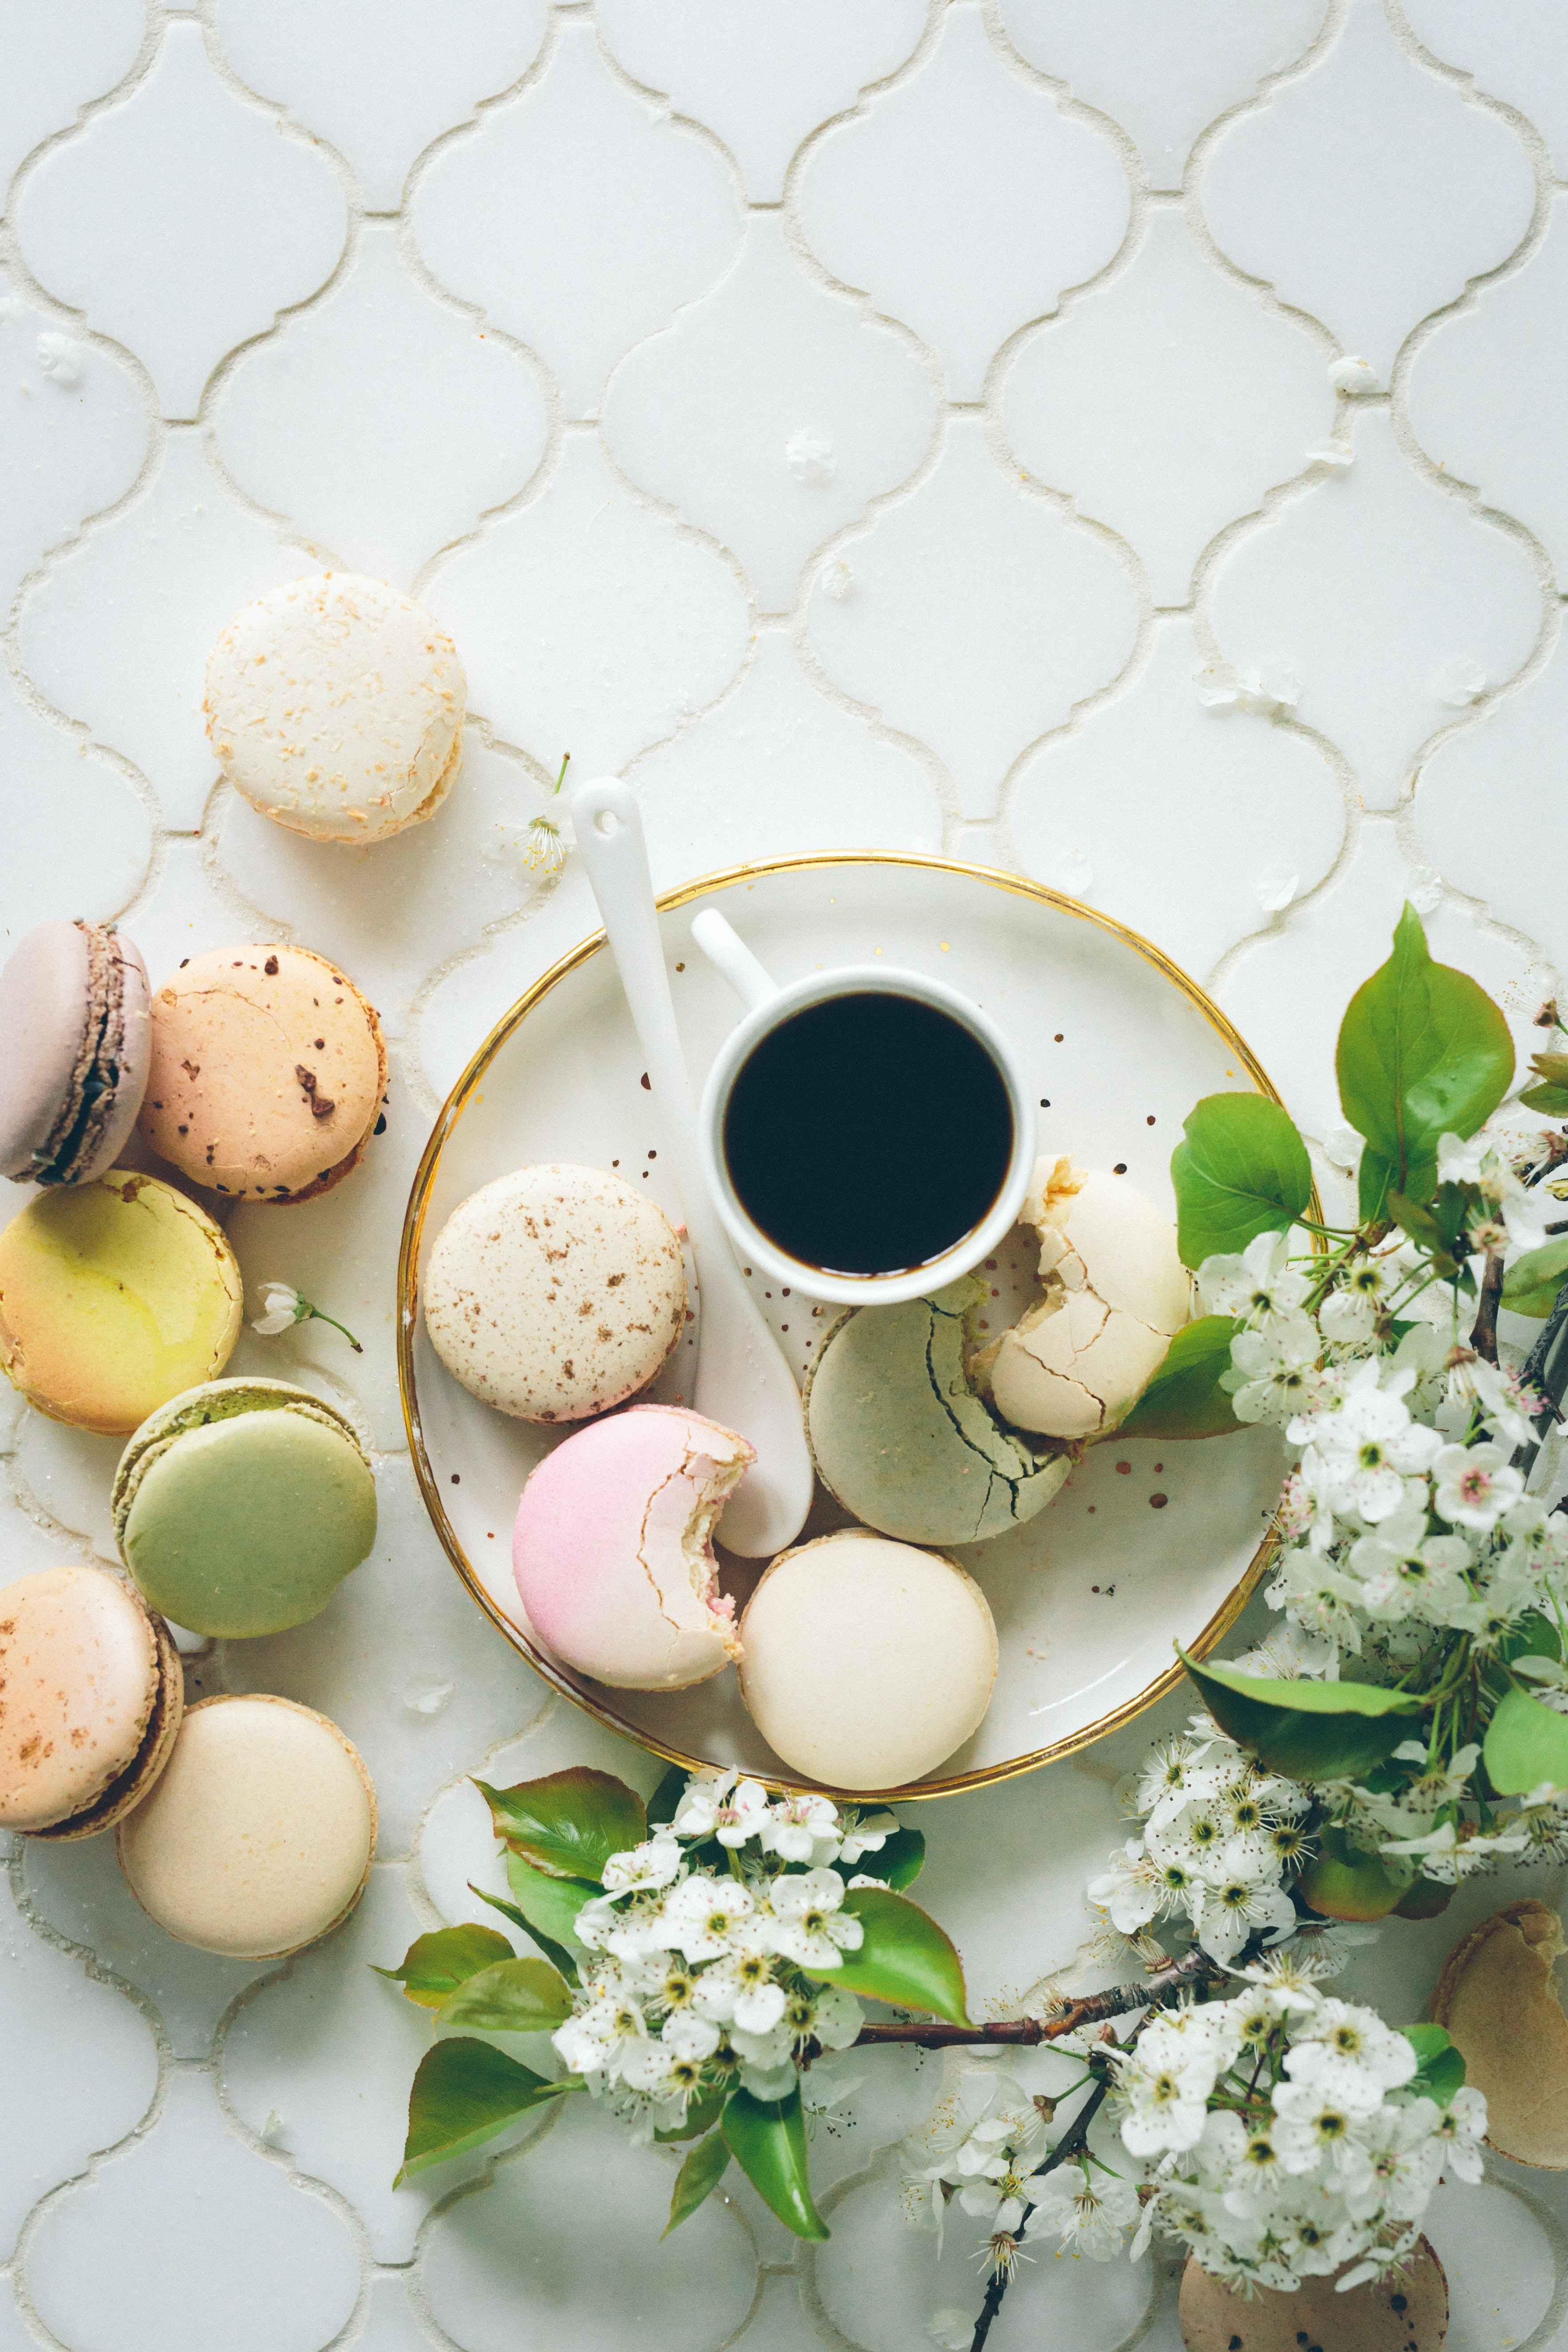 macarons beside teacup and ladle on round white ceramic plate